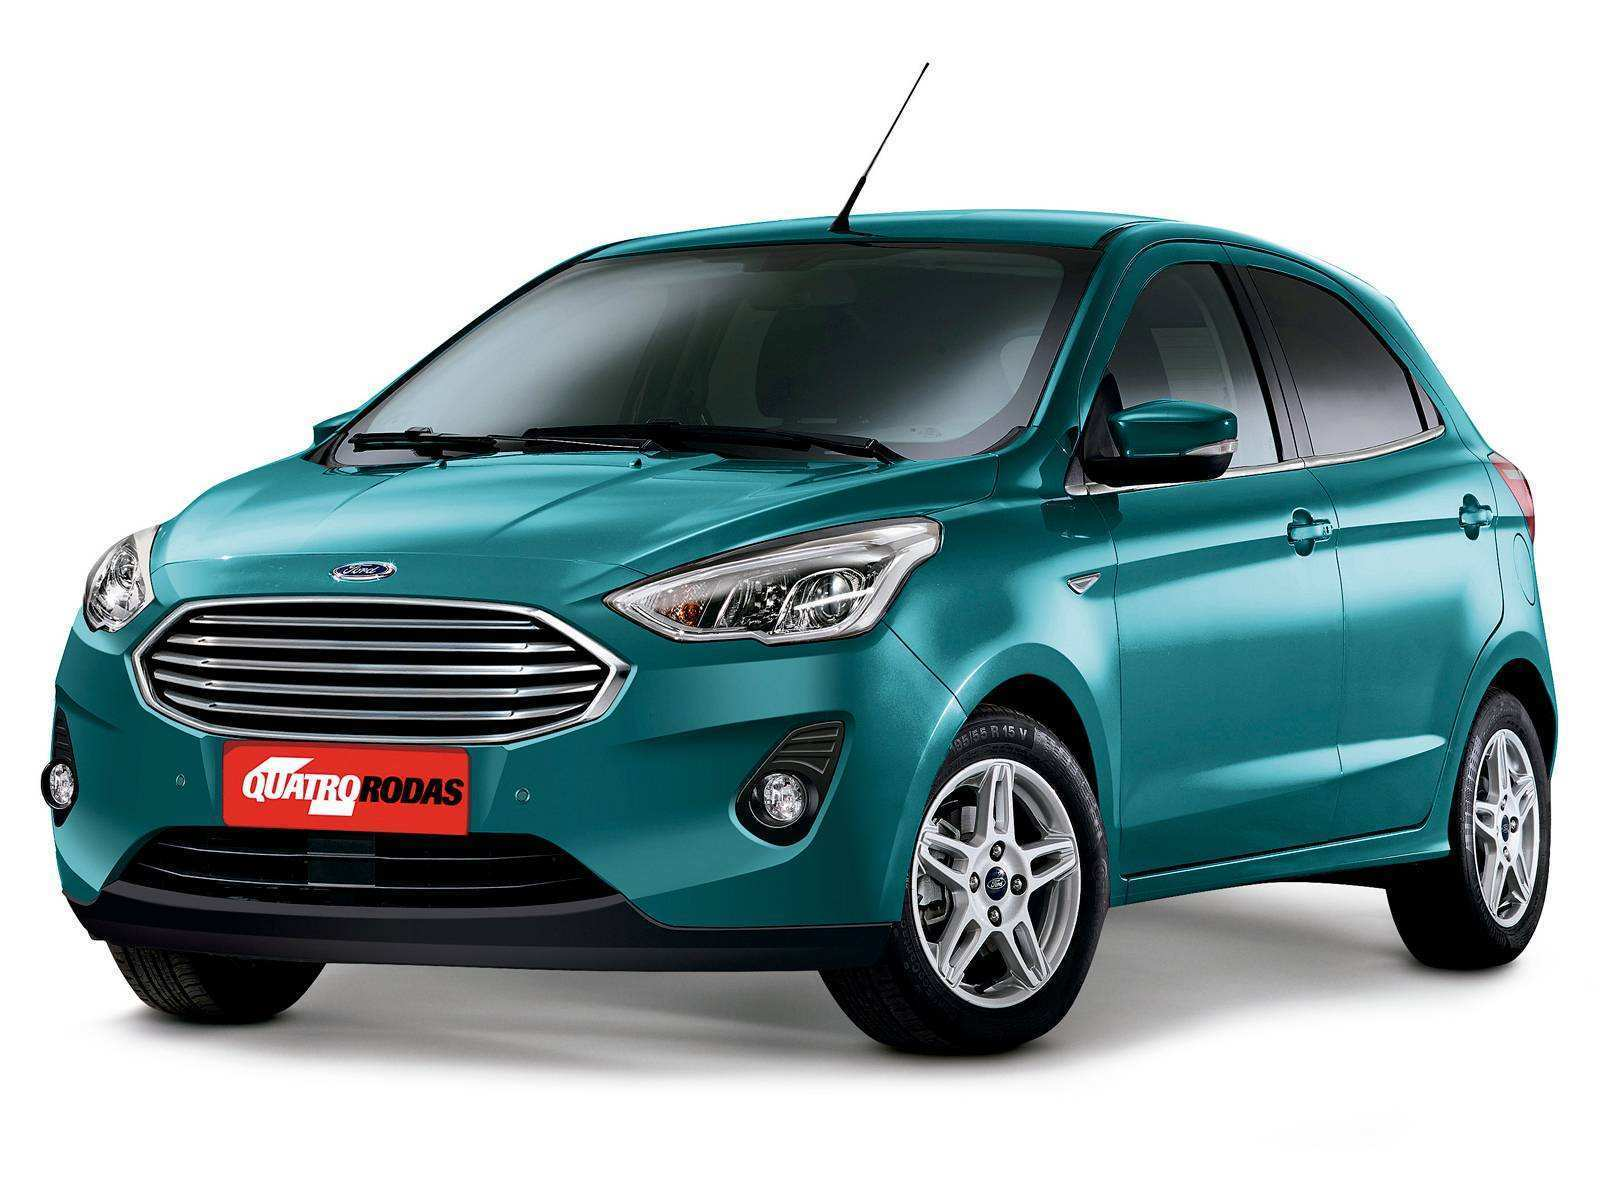 21 All New Ford Ka 2019 Facelift Redesign And Concept